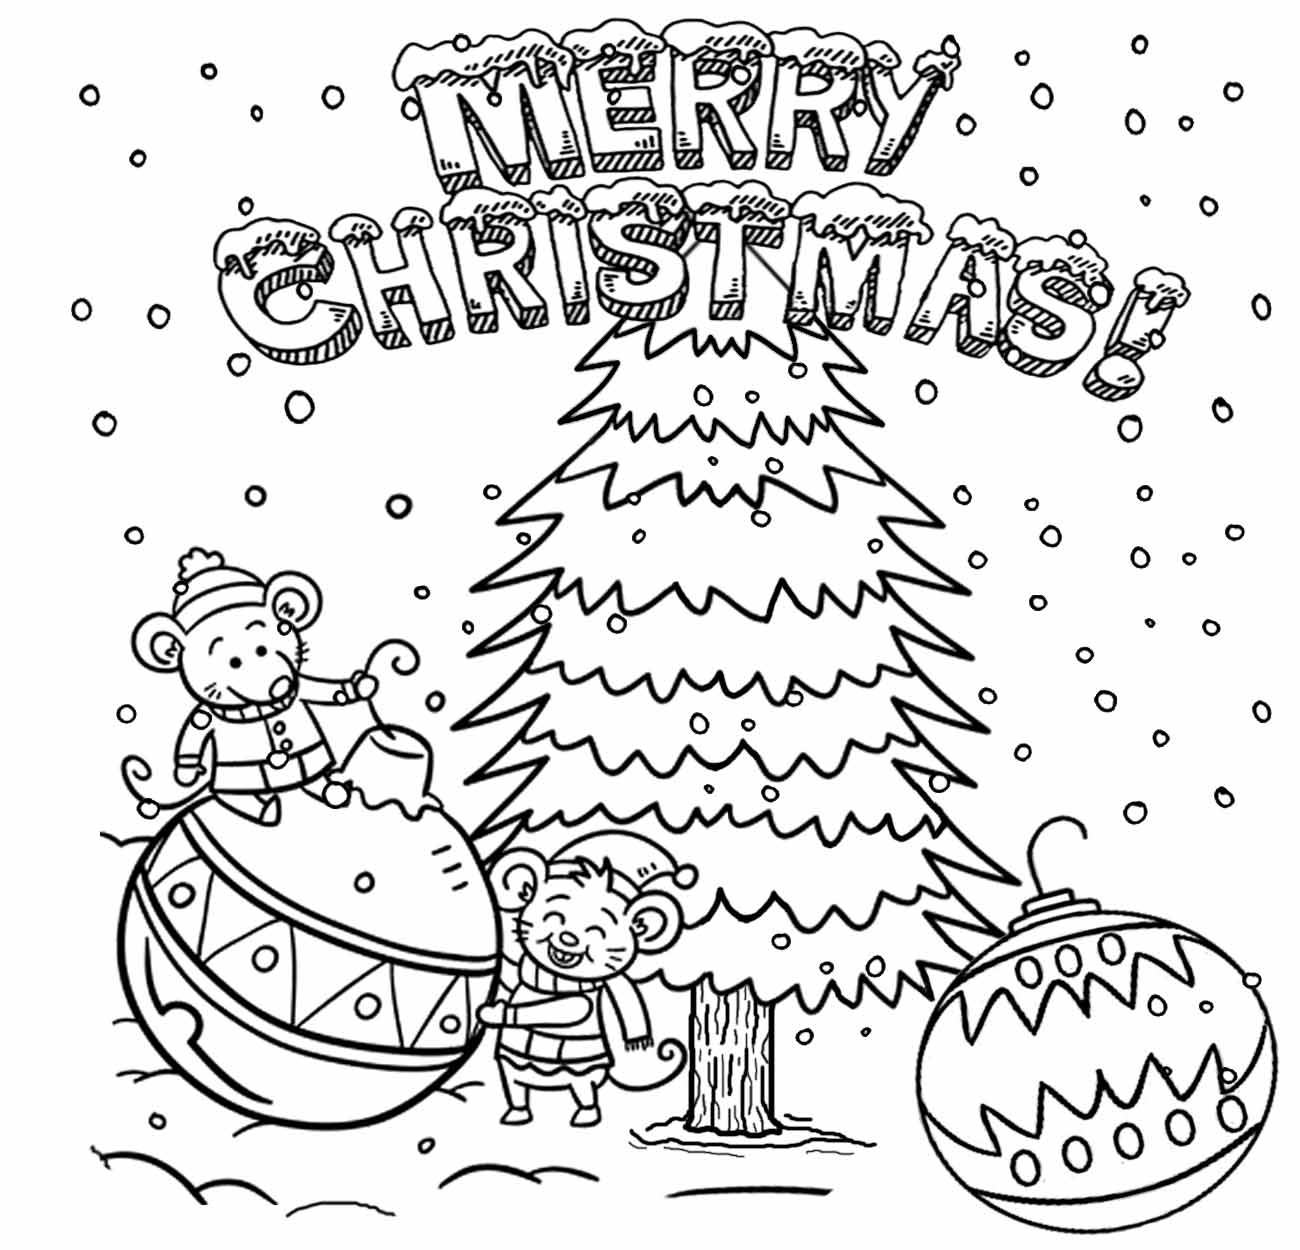 Christmas Drawing Ideas.Christmas Drawing Ideas Christmas Day